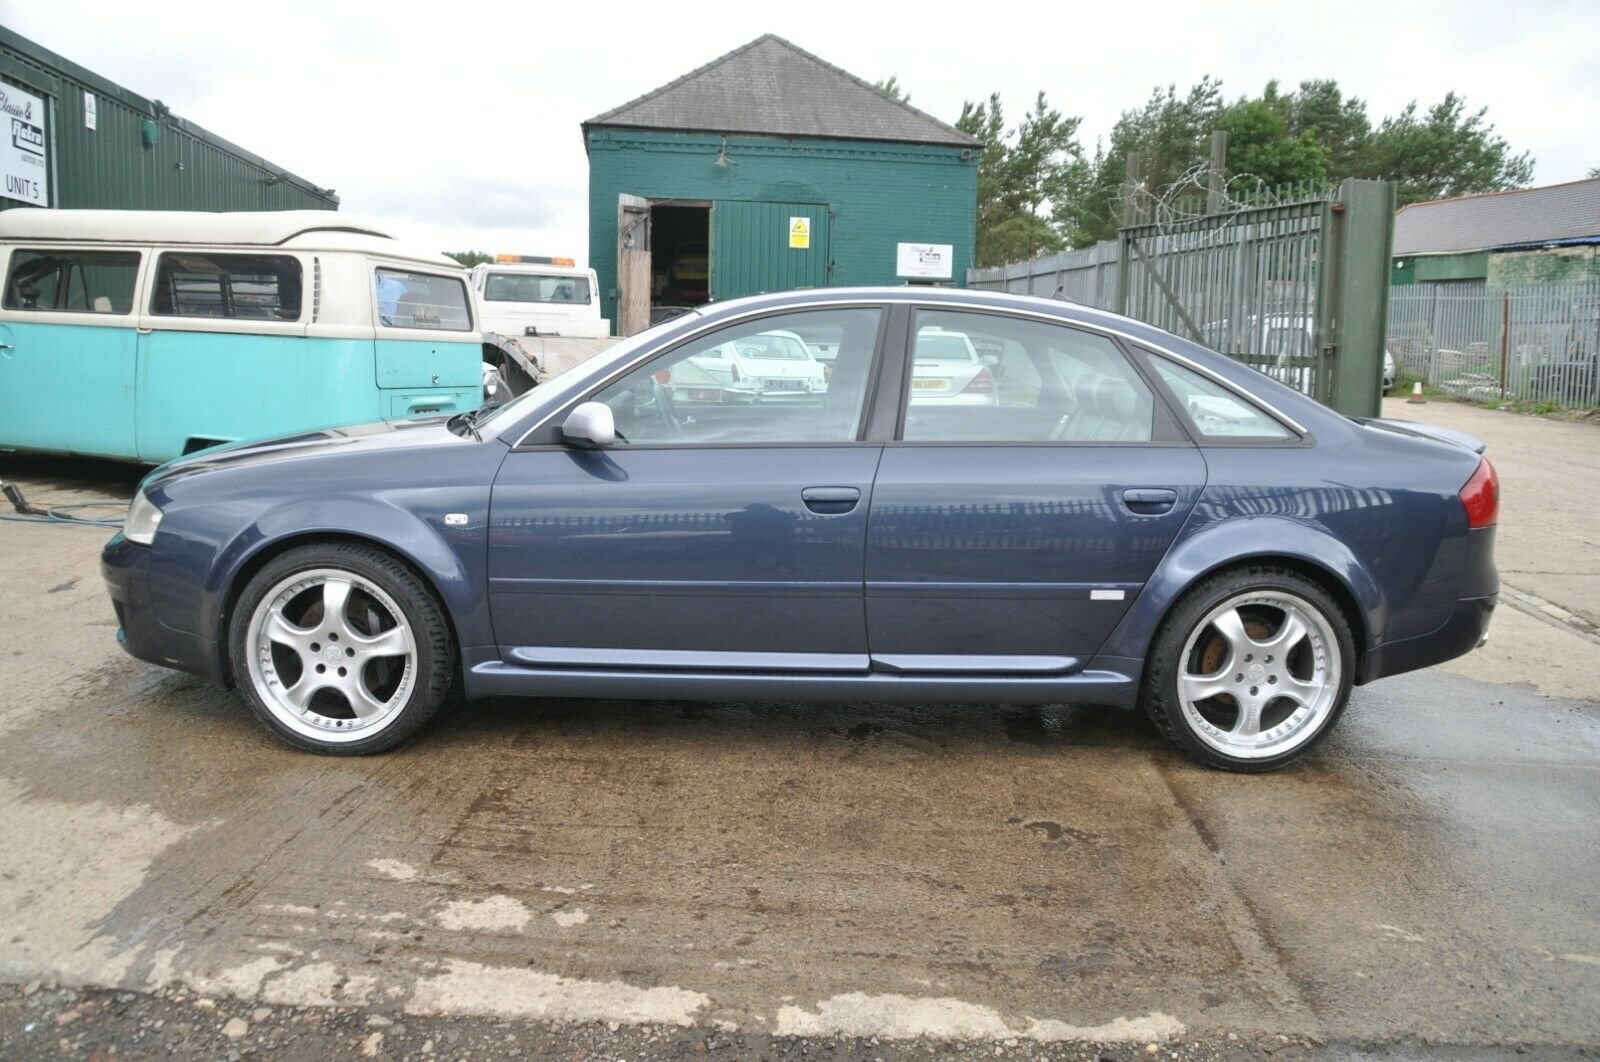 2002 AUDI S6 LOW MILES LEATHER RECAROS BOSE STAINLESS EXHAUSAUST For Sale (picture 6 of 6)